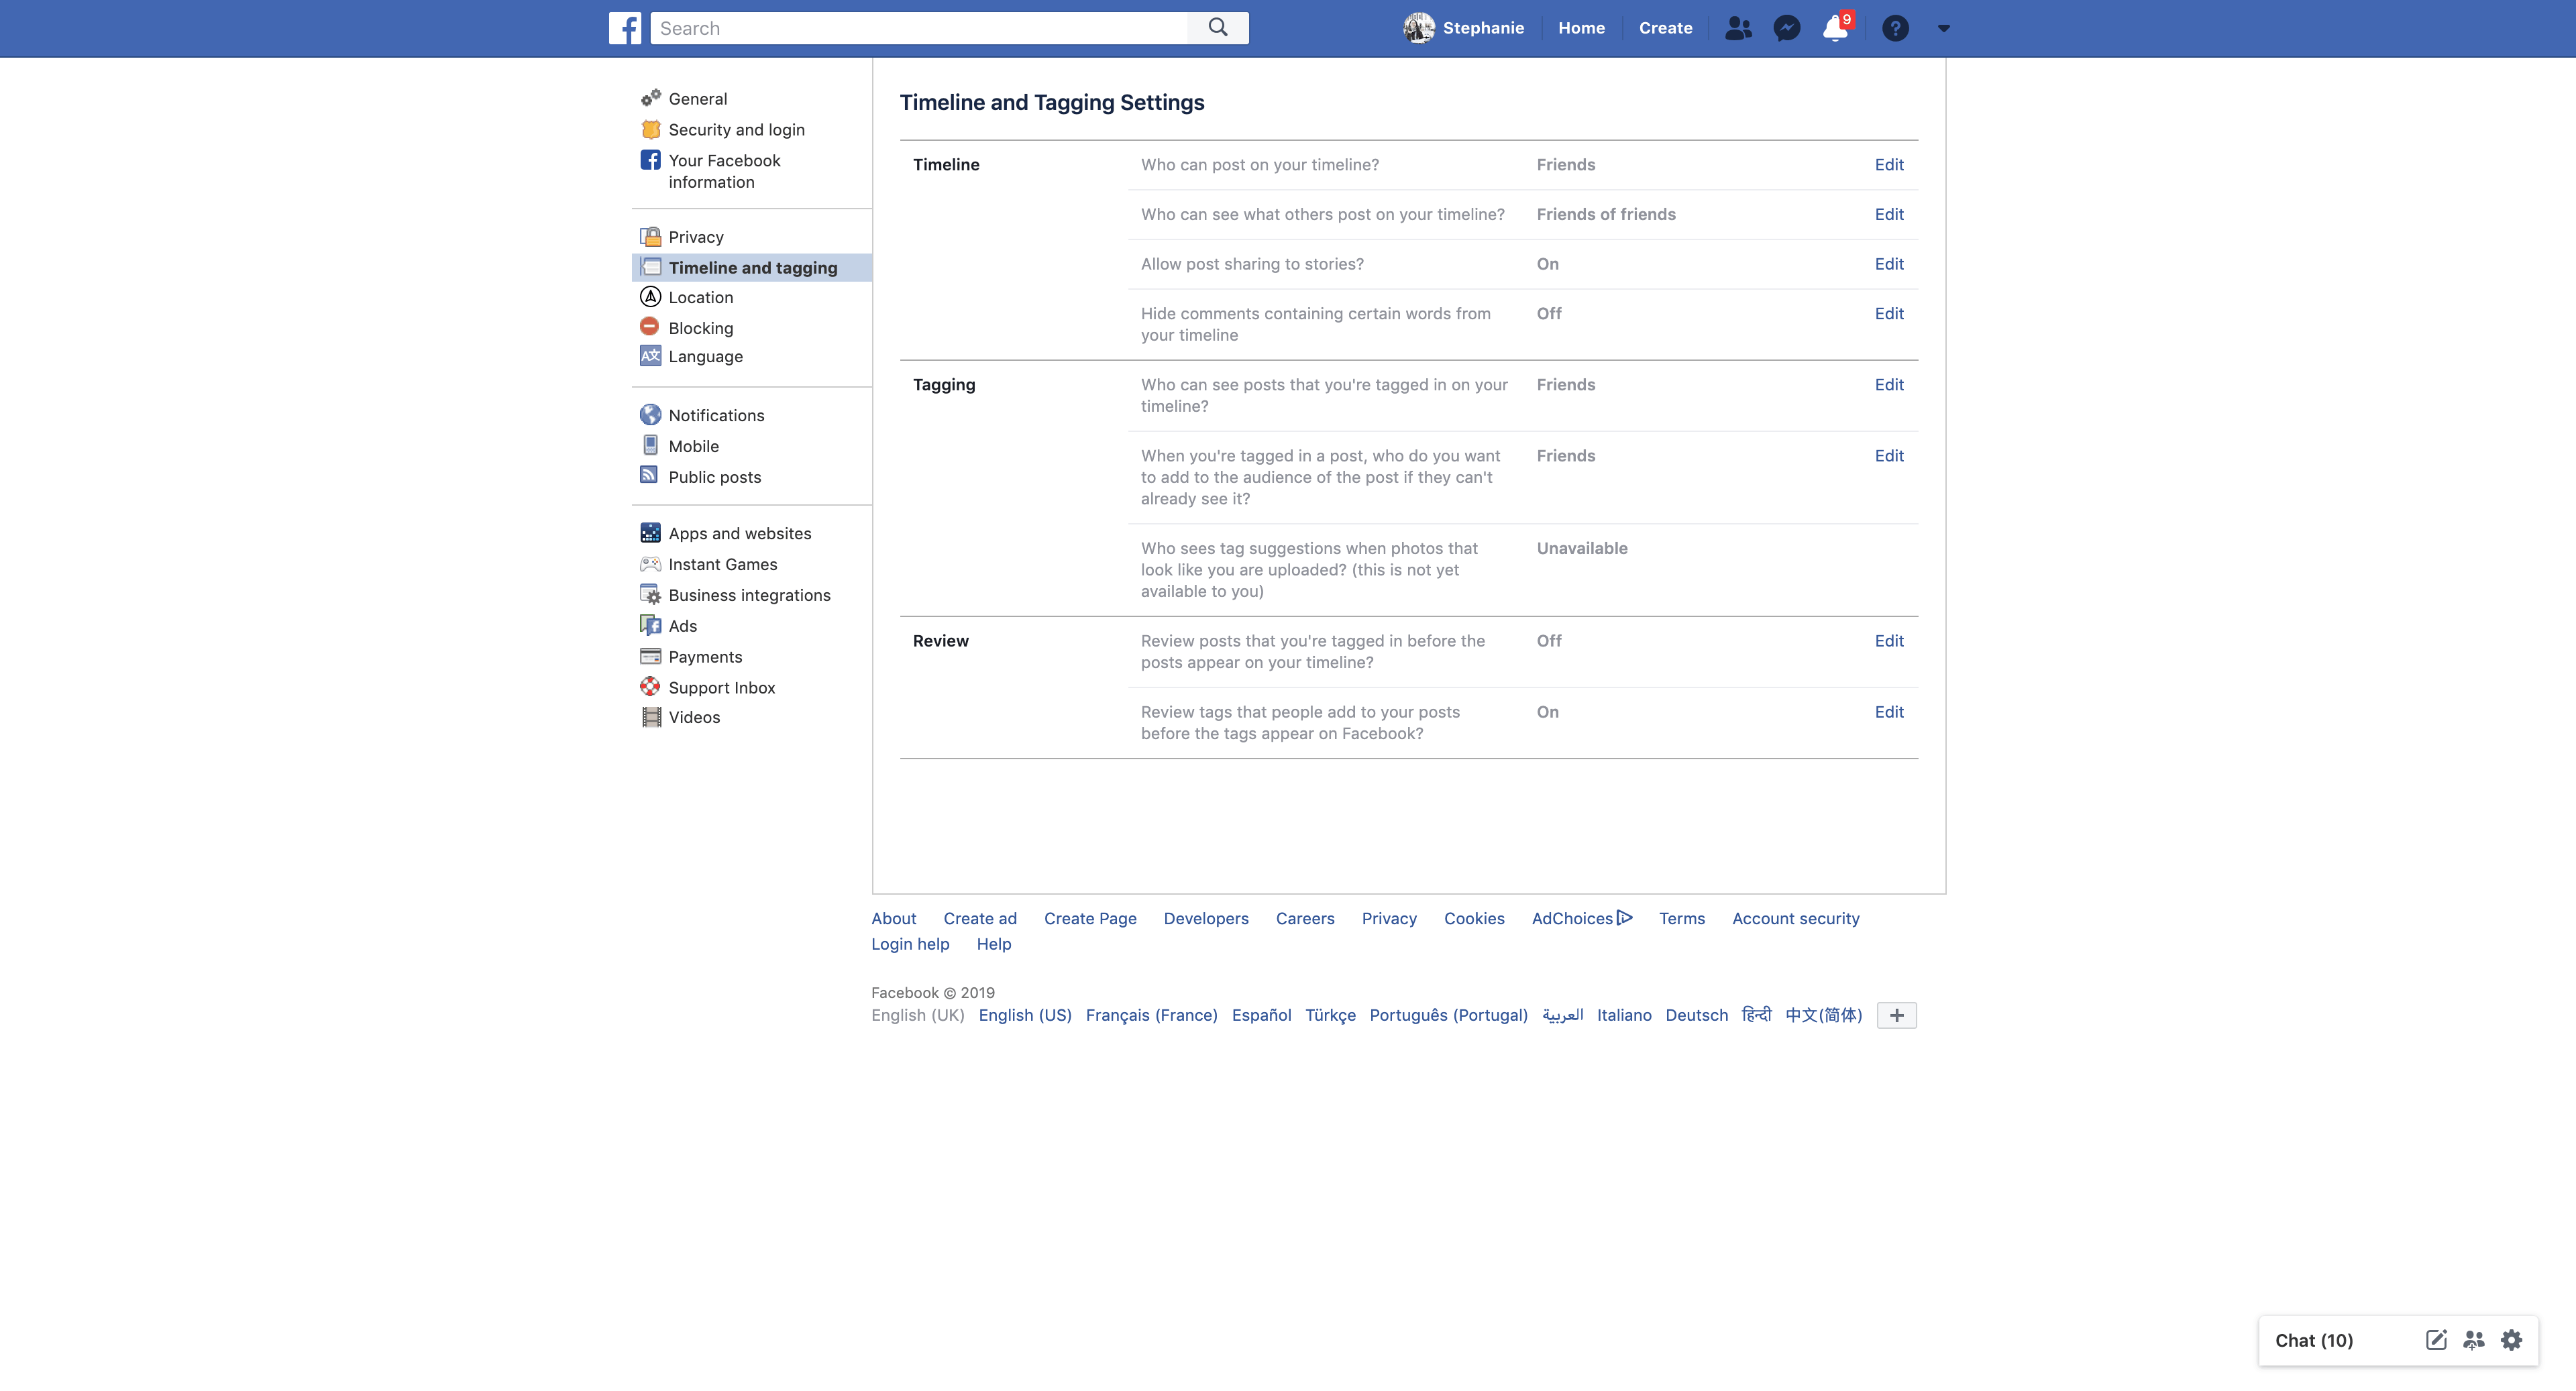 Timeline and Tagging by Facebook Settings  - UI Garage - The database of UI